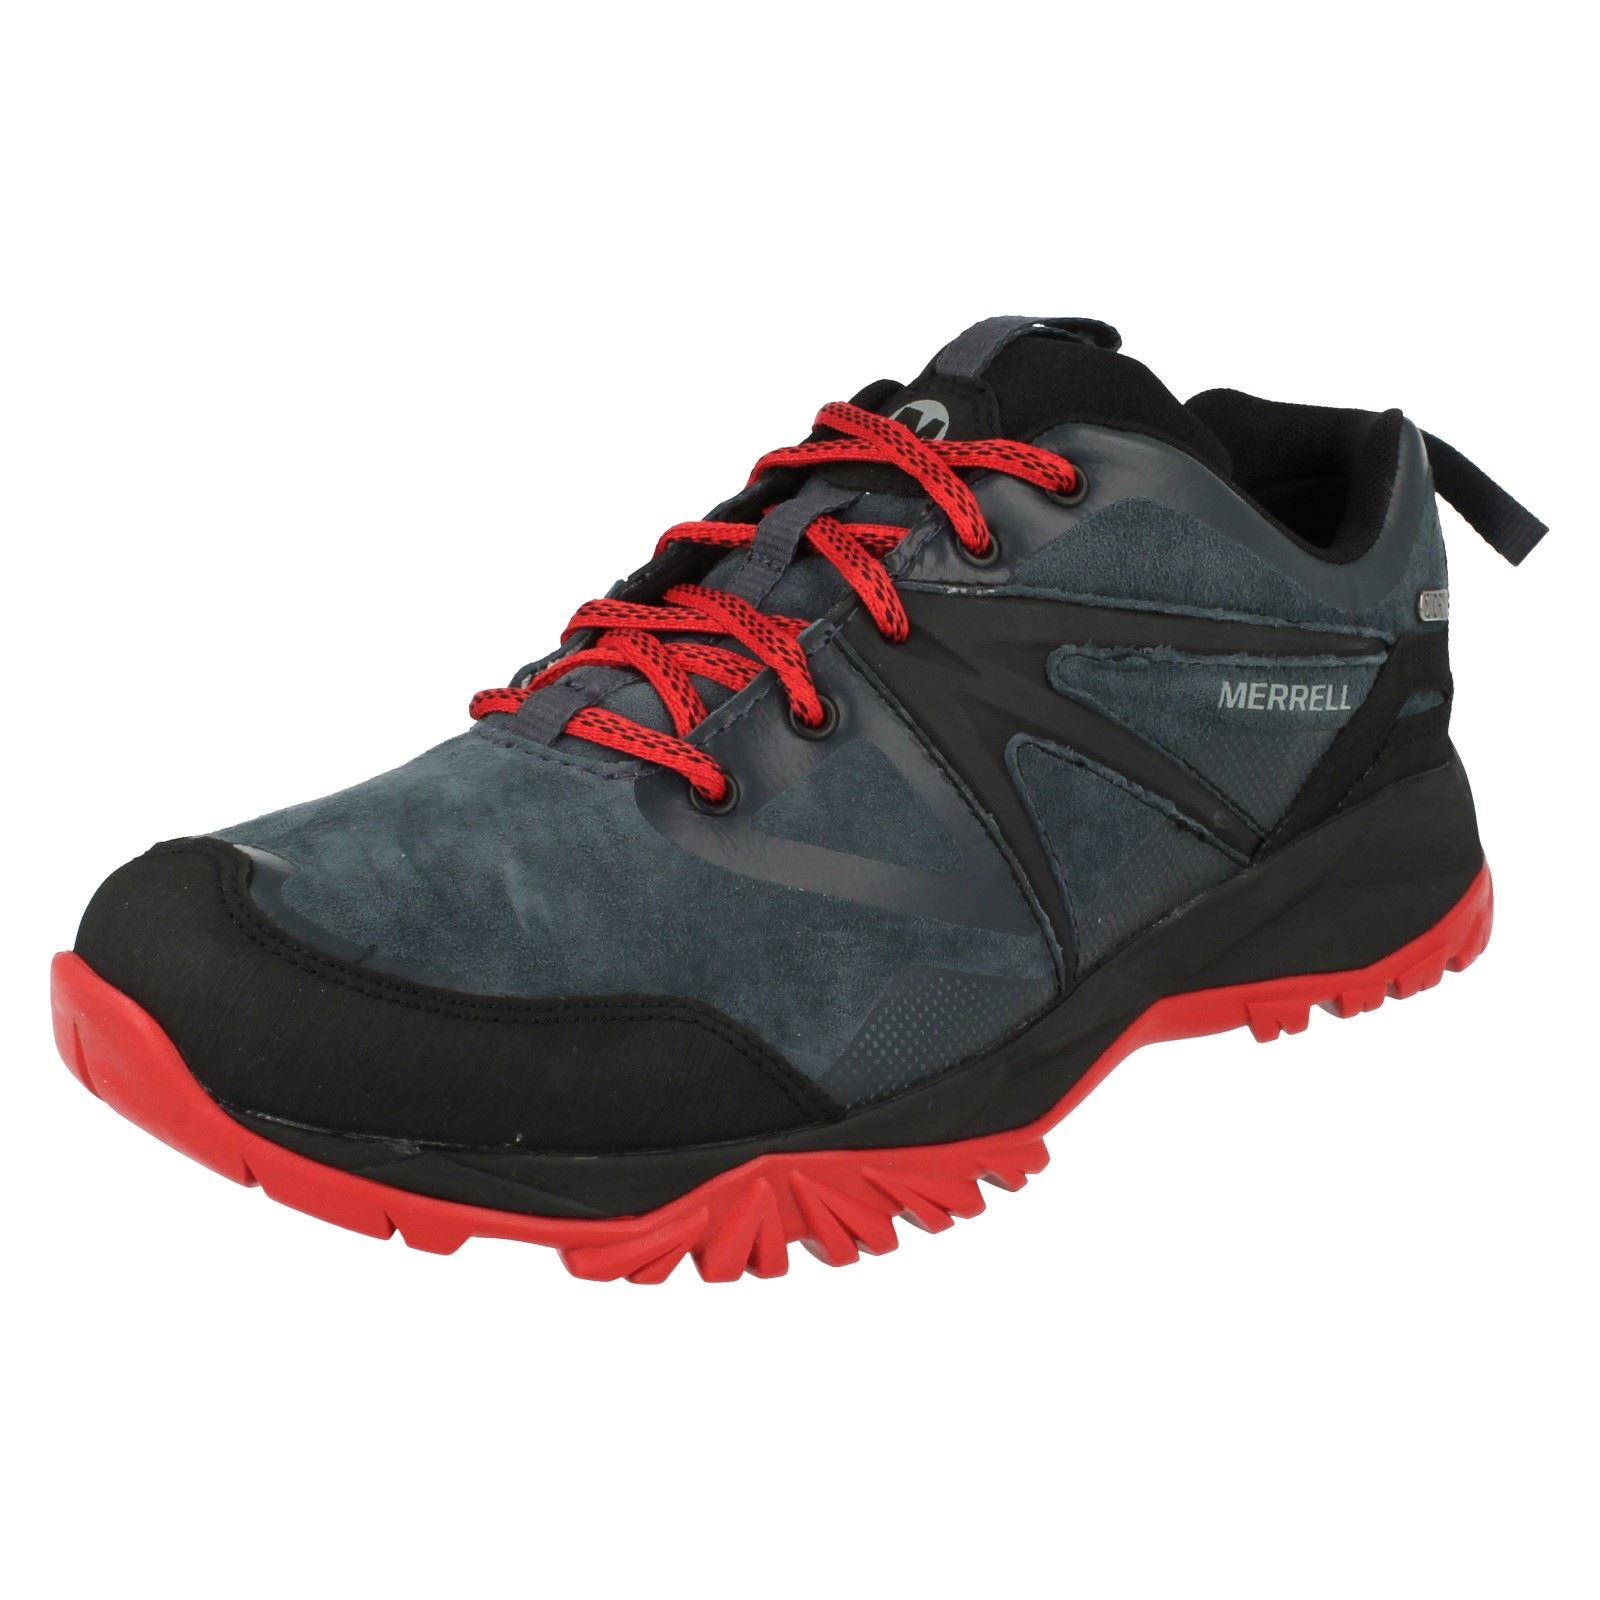 Mens Merrell Waterproof Lace Up Trainers Capra Bolt Bolt Bolt Leather WTPF c357d4